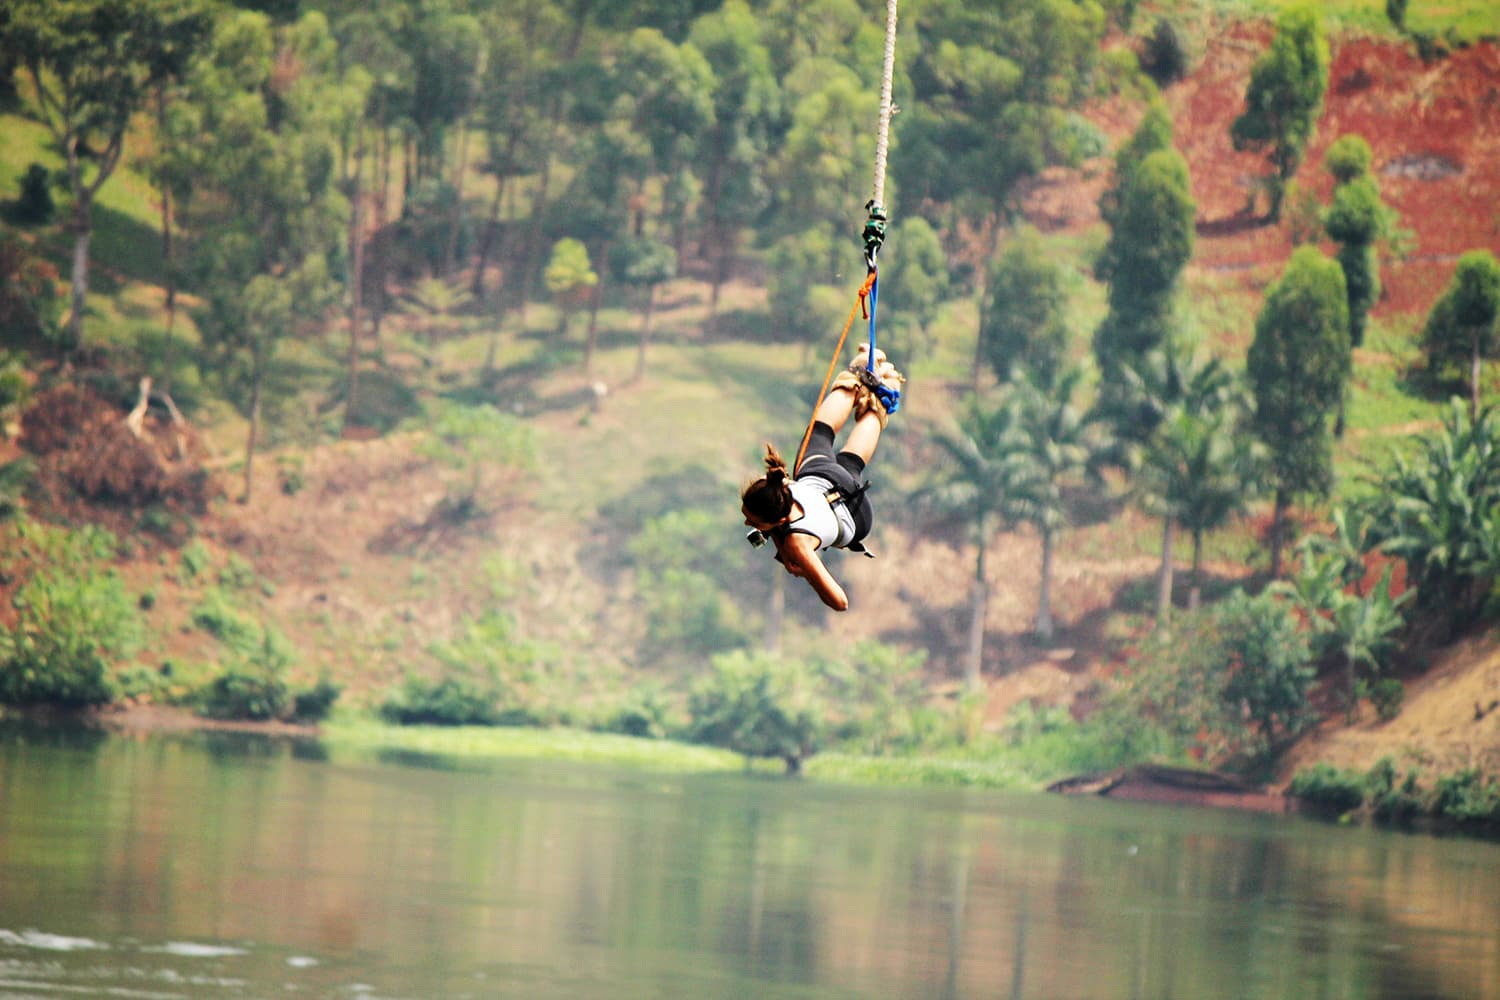 Bungee jumping over River Nile in Uganda.